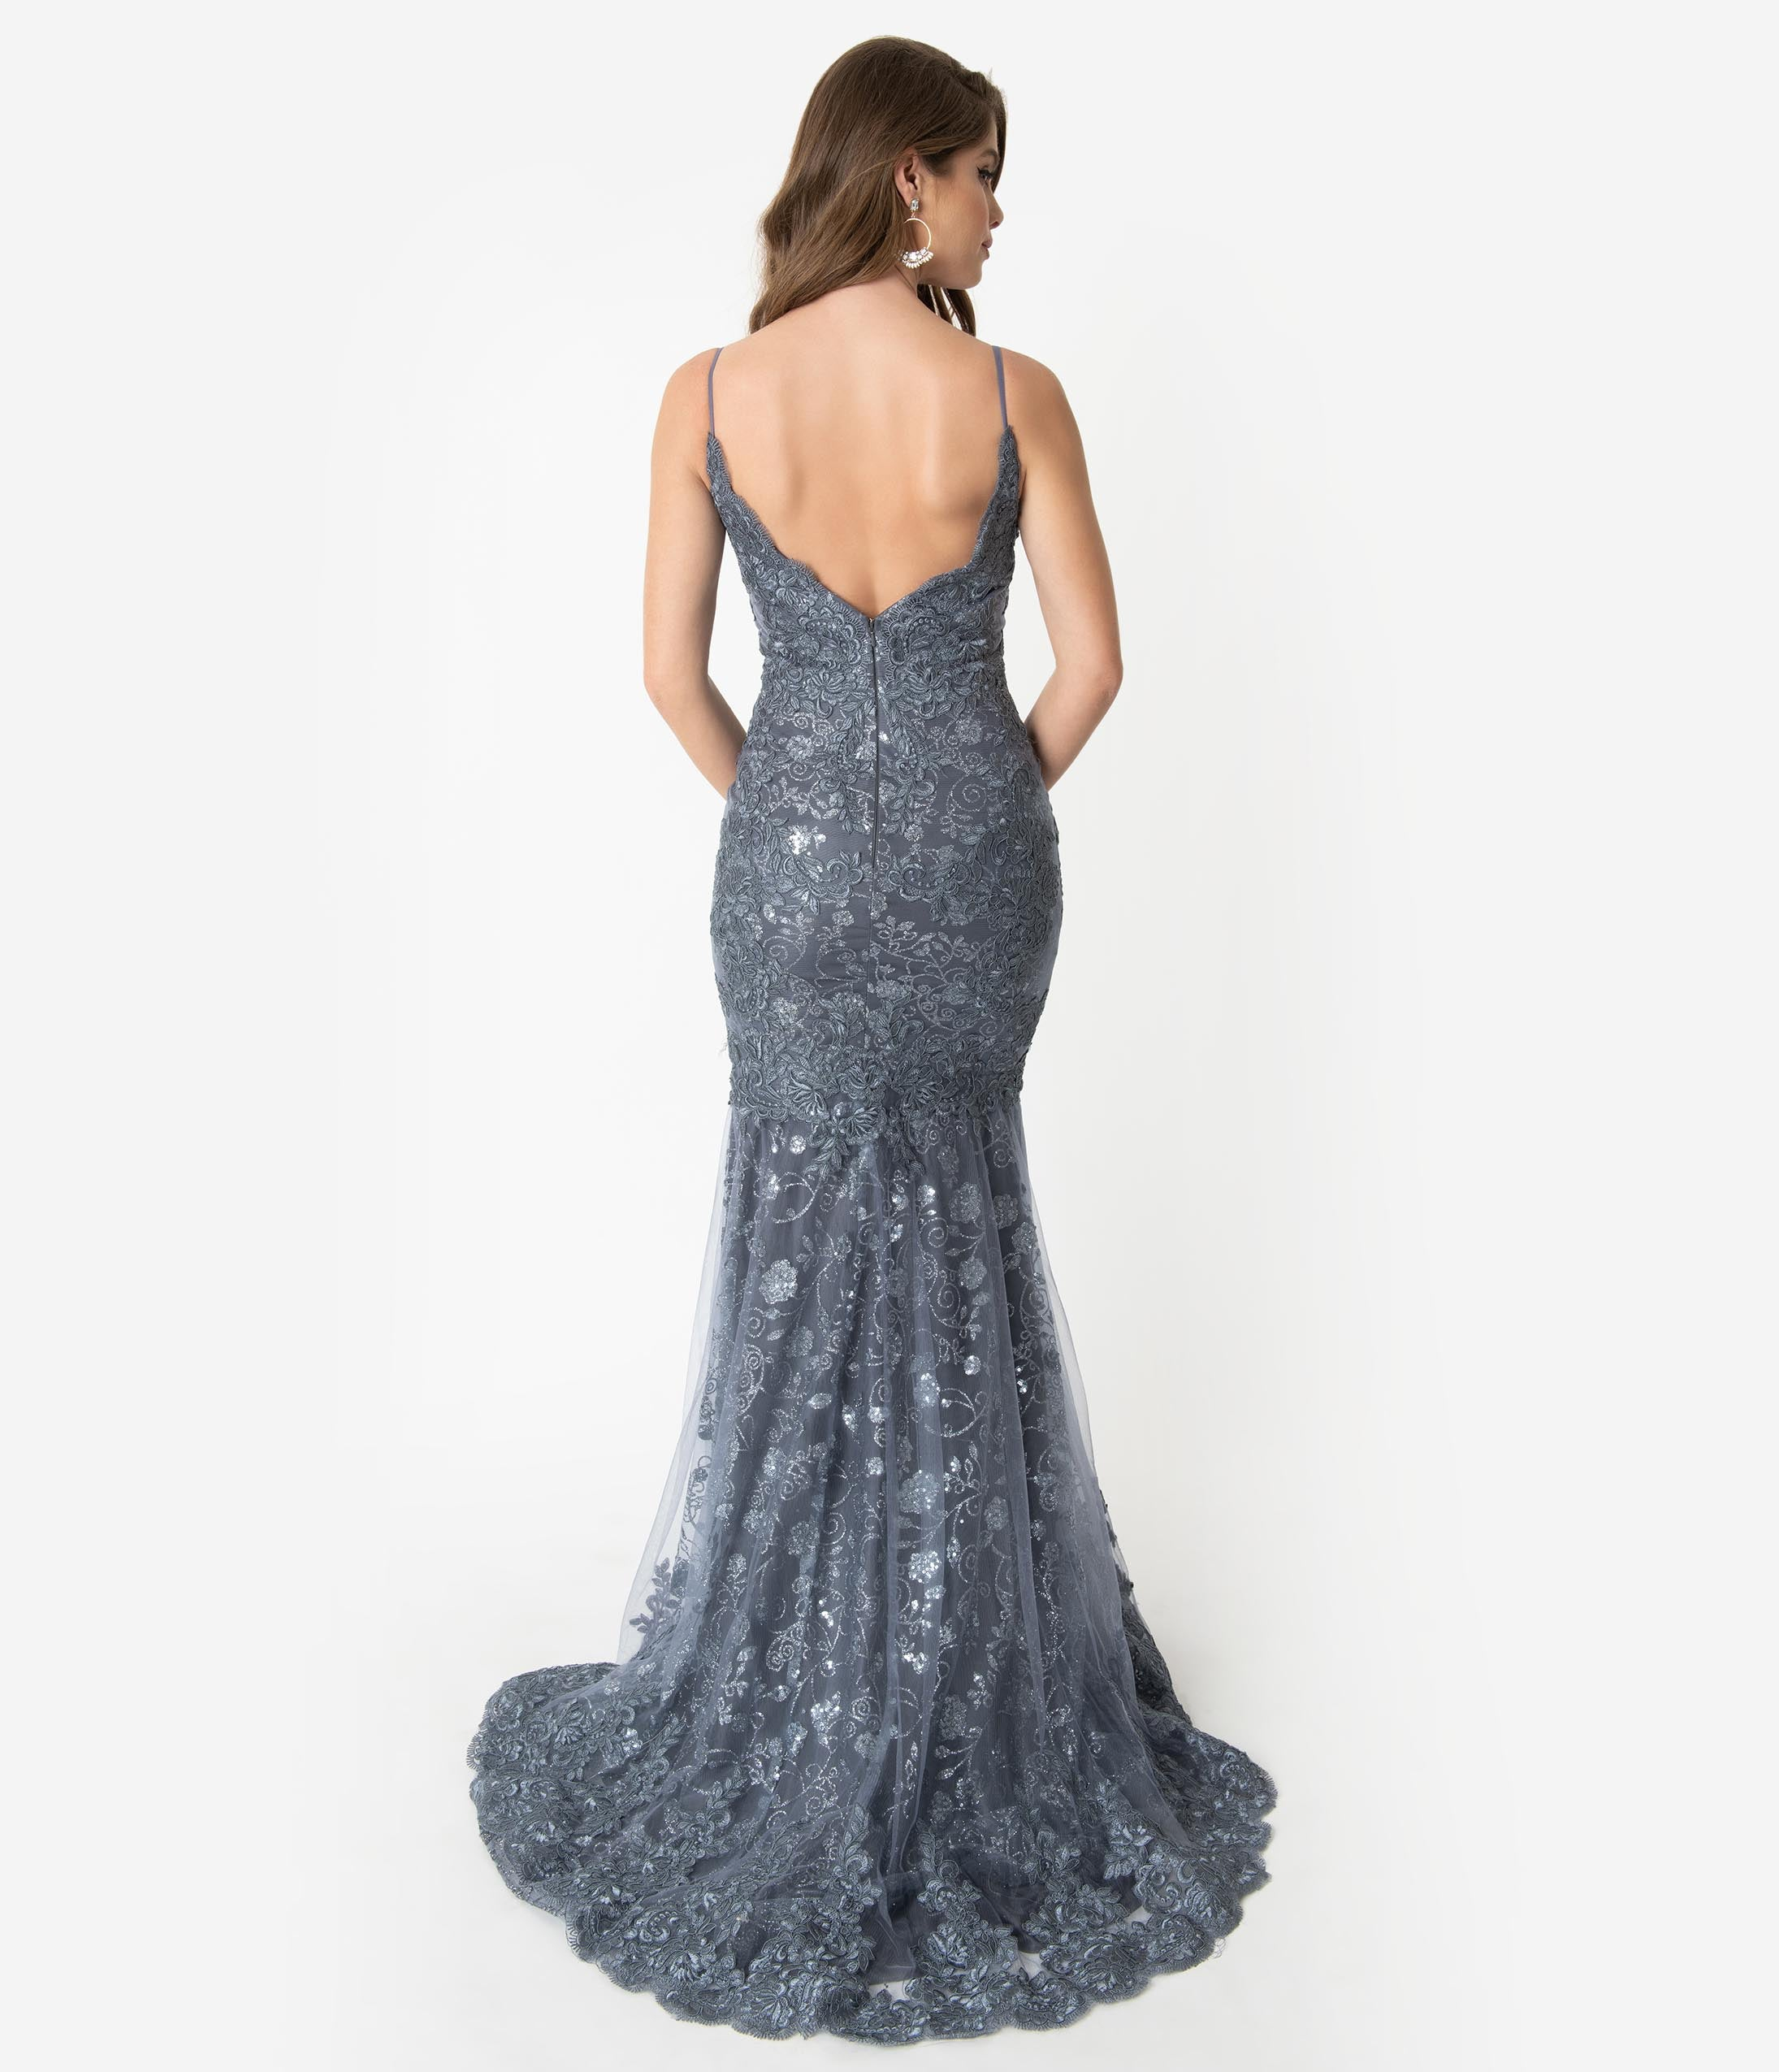 1640c9dbc1 Hunter Green Sequin Lace Sexy Mermaid Gown – Unique Vintage